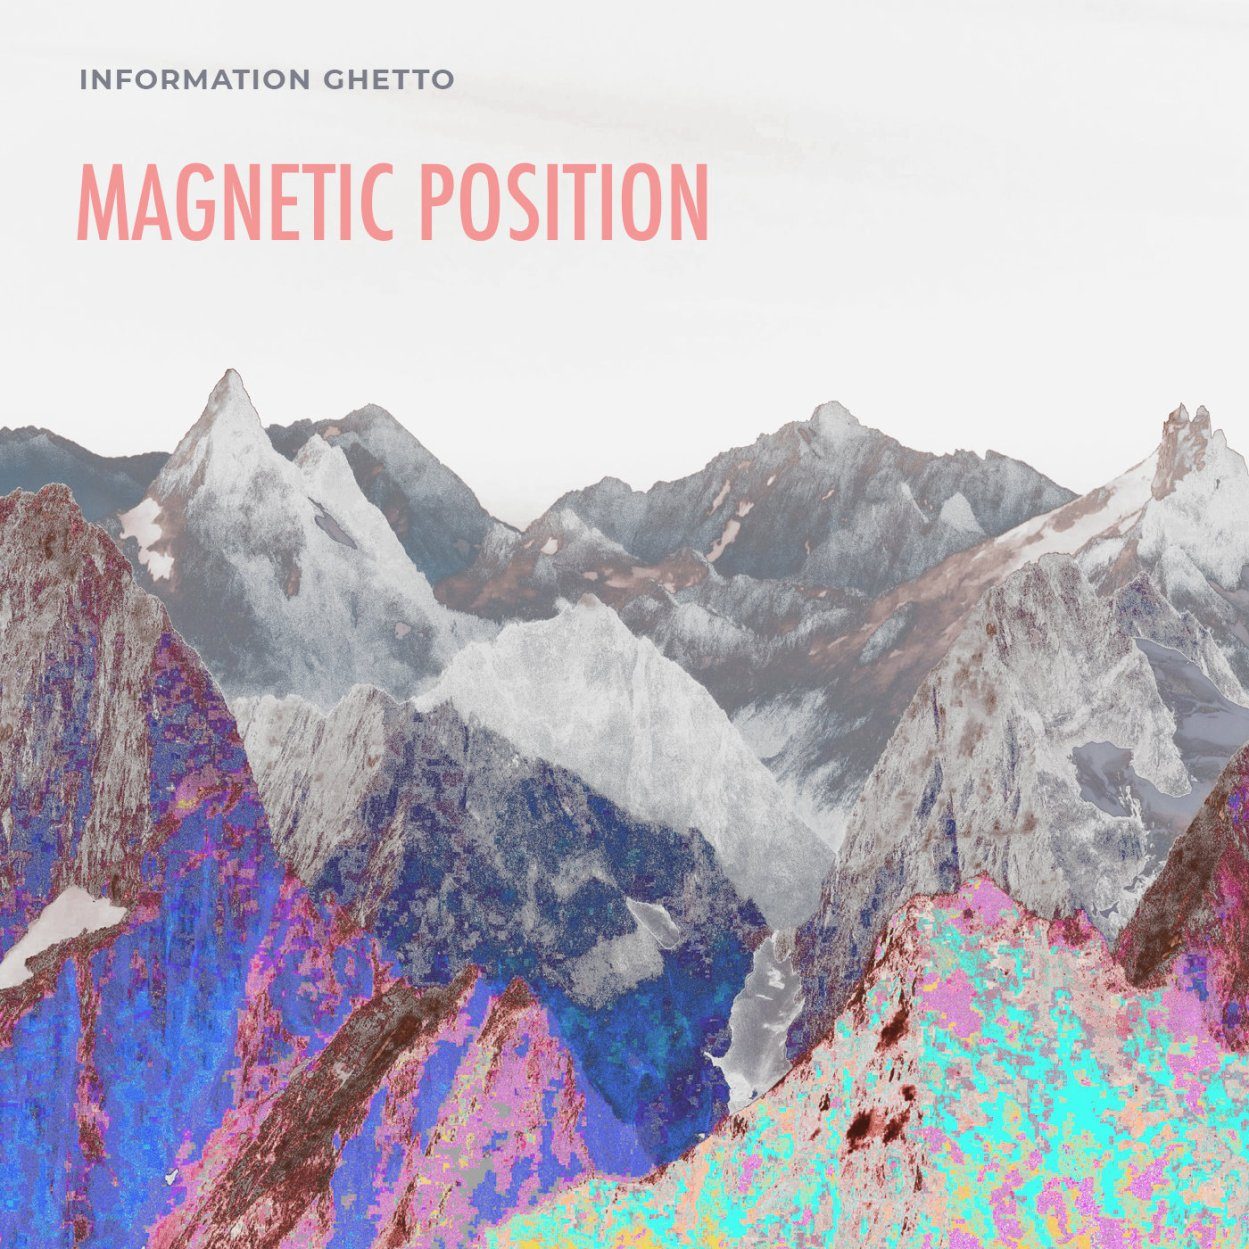 Information Ghetto – Magnetic Position